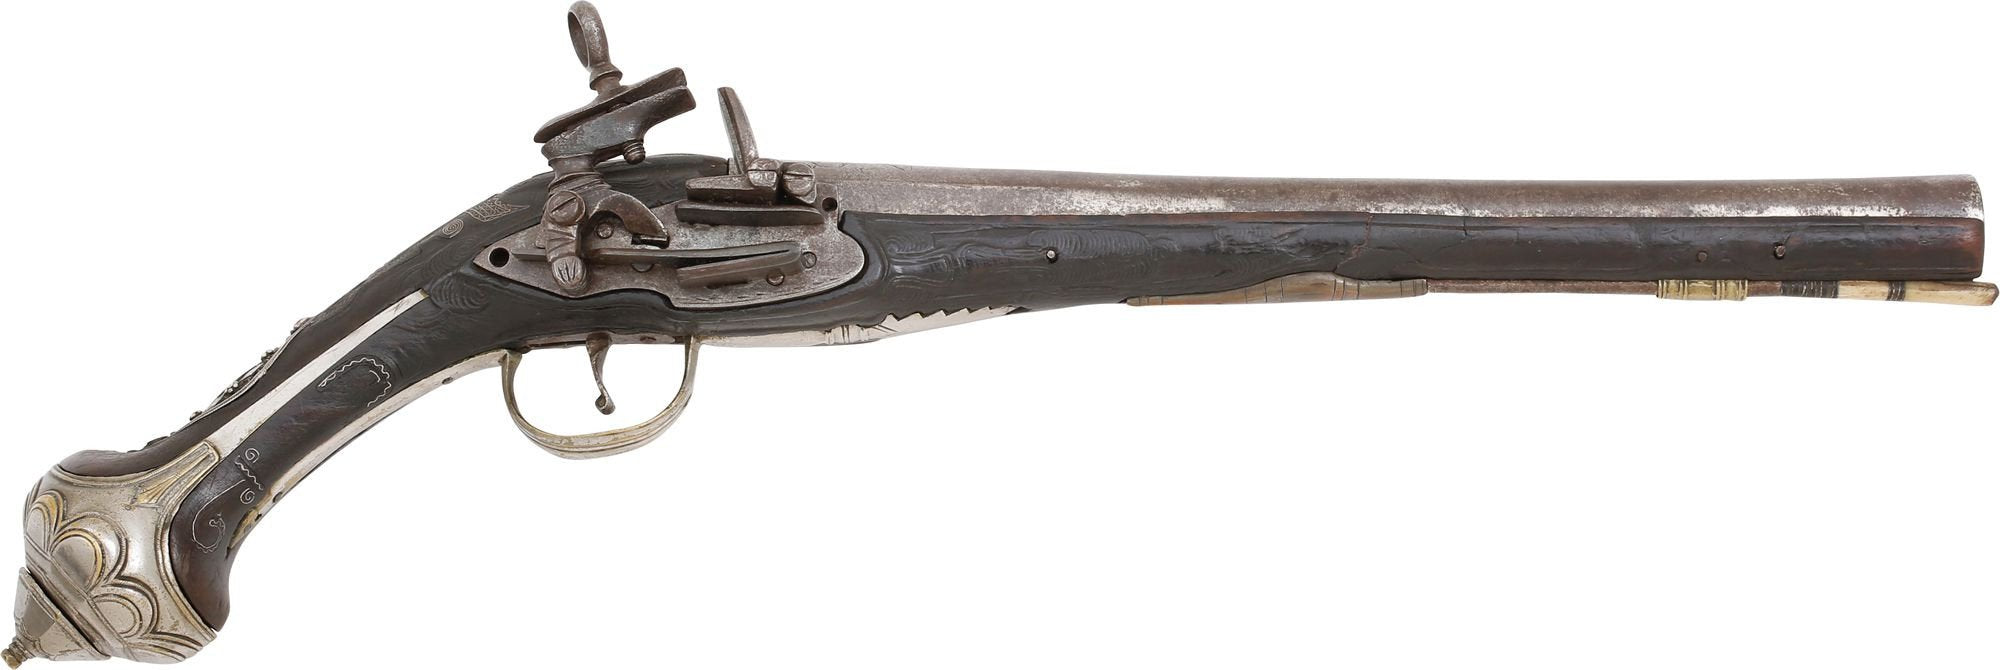 Ottoman Miquelet Pistol Of Exceptional Quality - Product